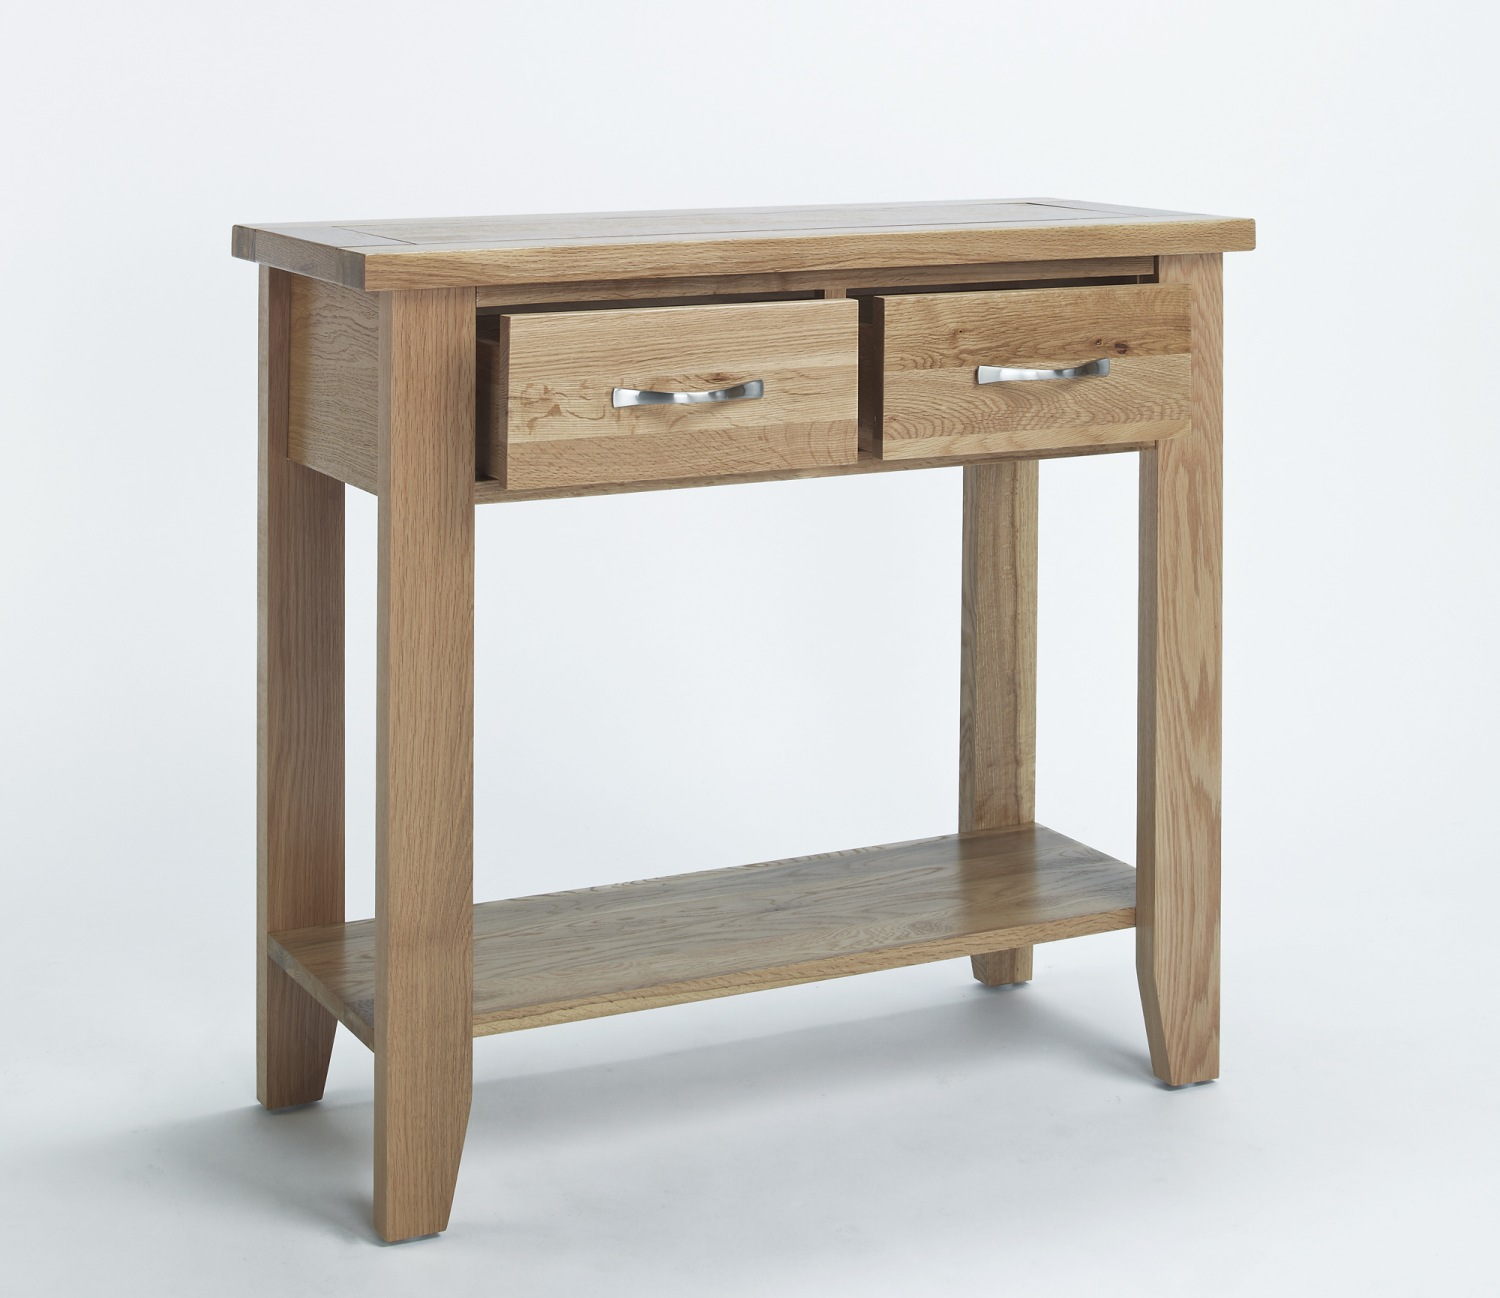 compton solid oak furniture small hallway console hall. Black Bedroom Furniture Sets. Home Design Ideas